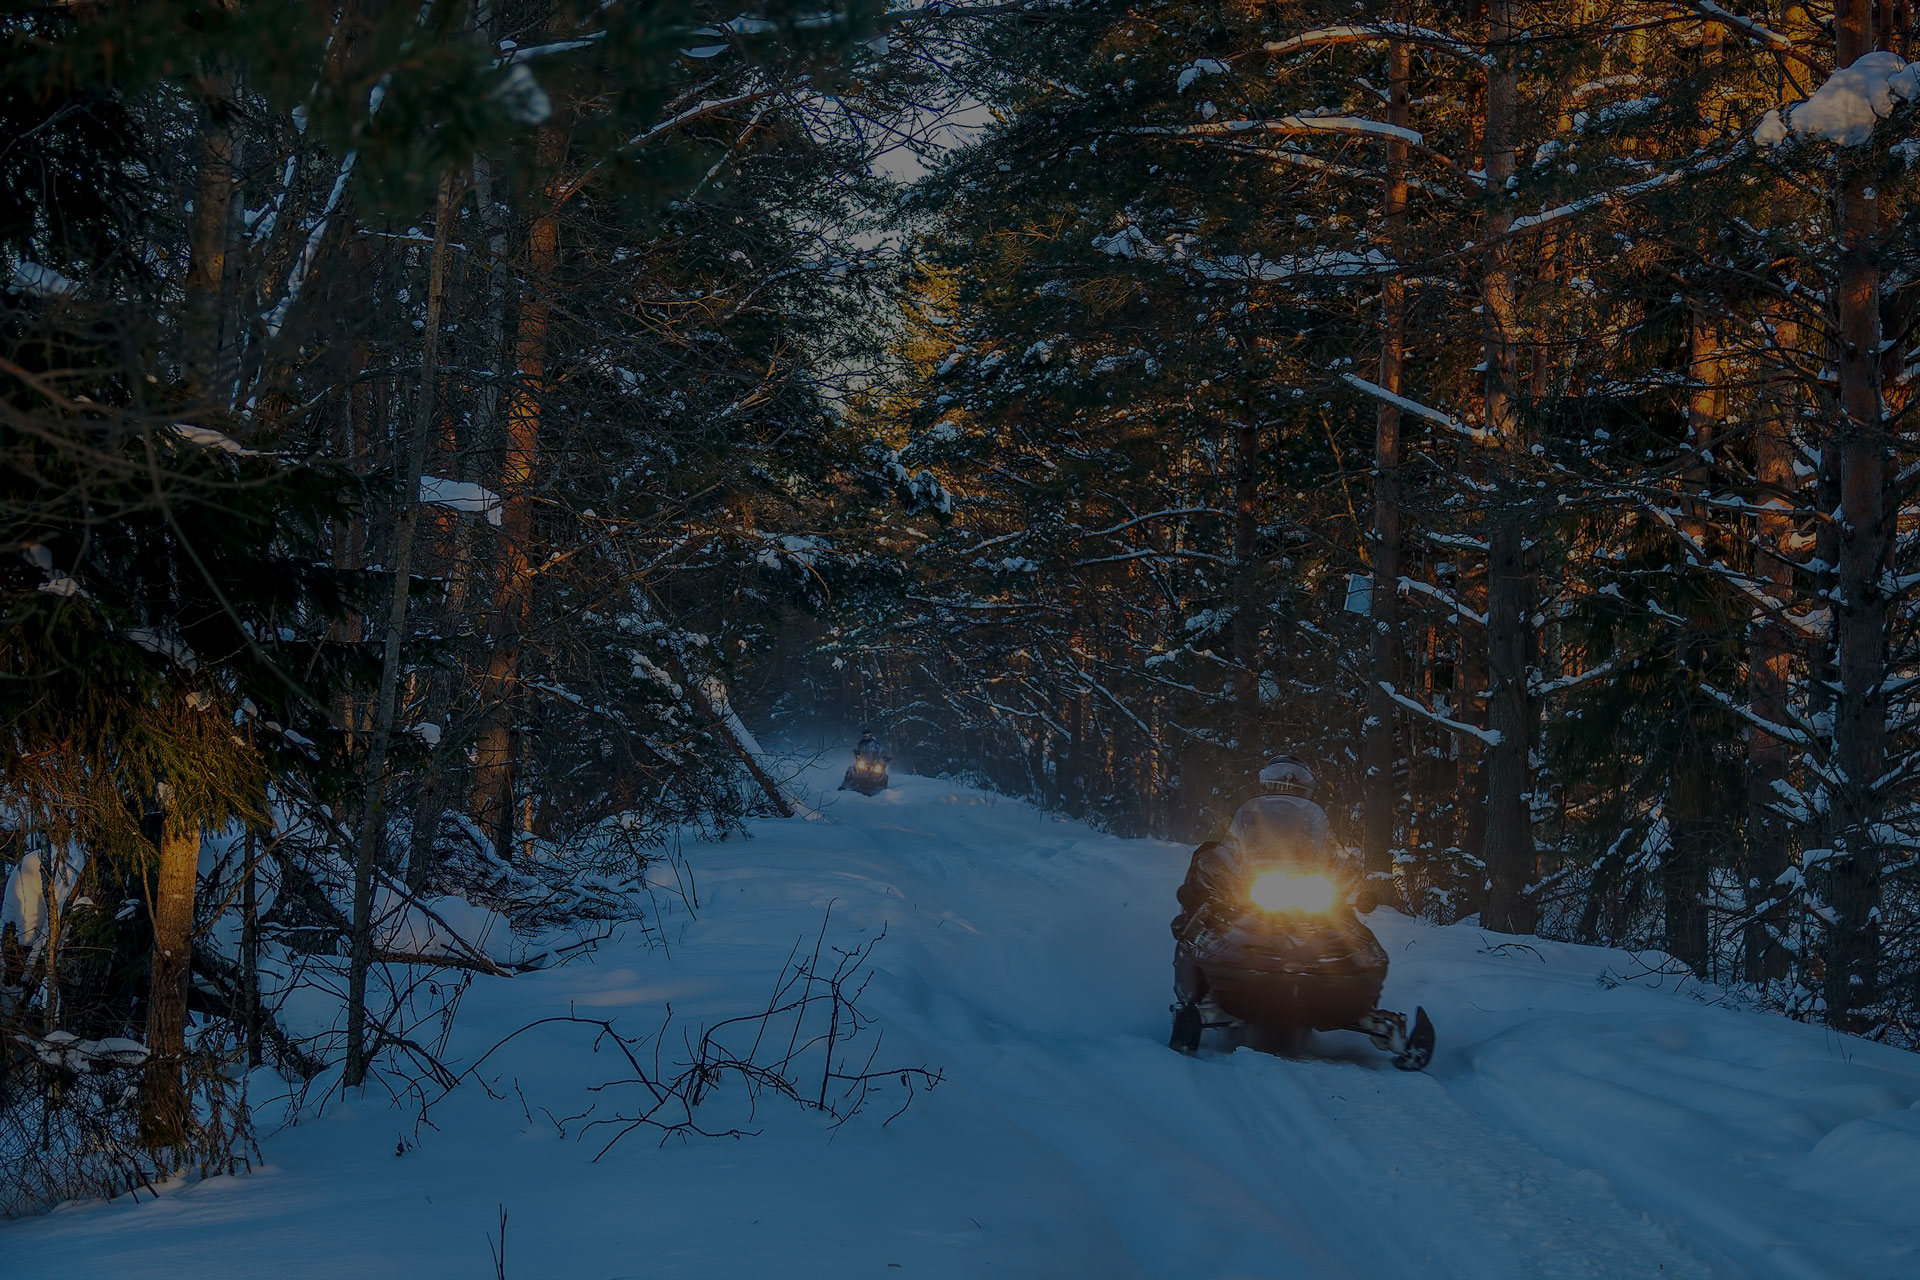 Snowmobiles travel on a winter forest road far from civilization.